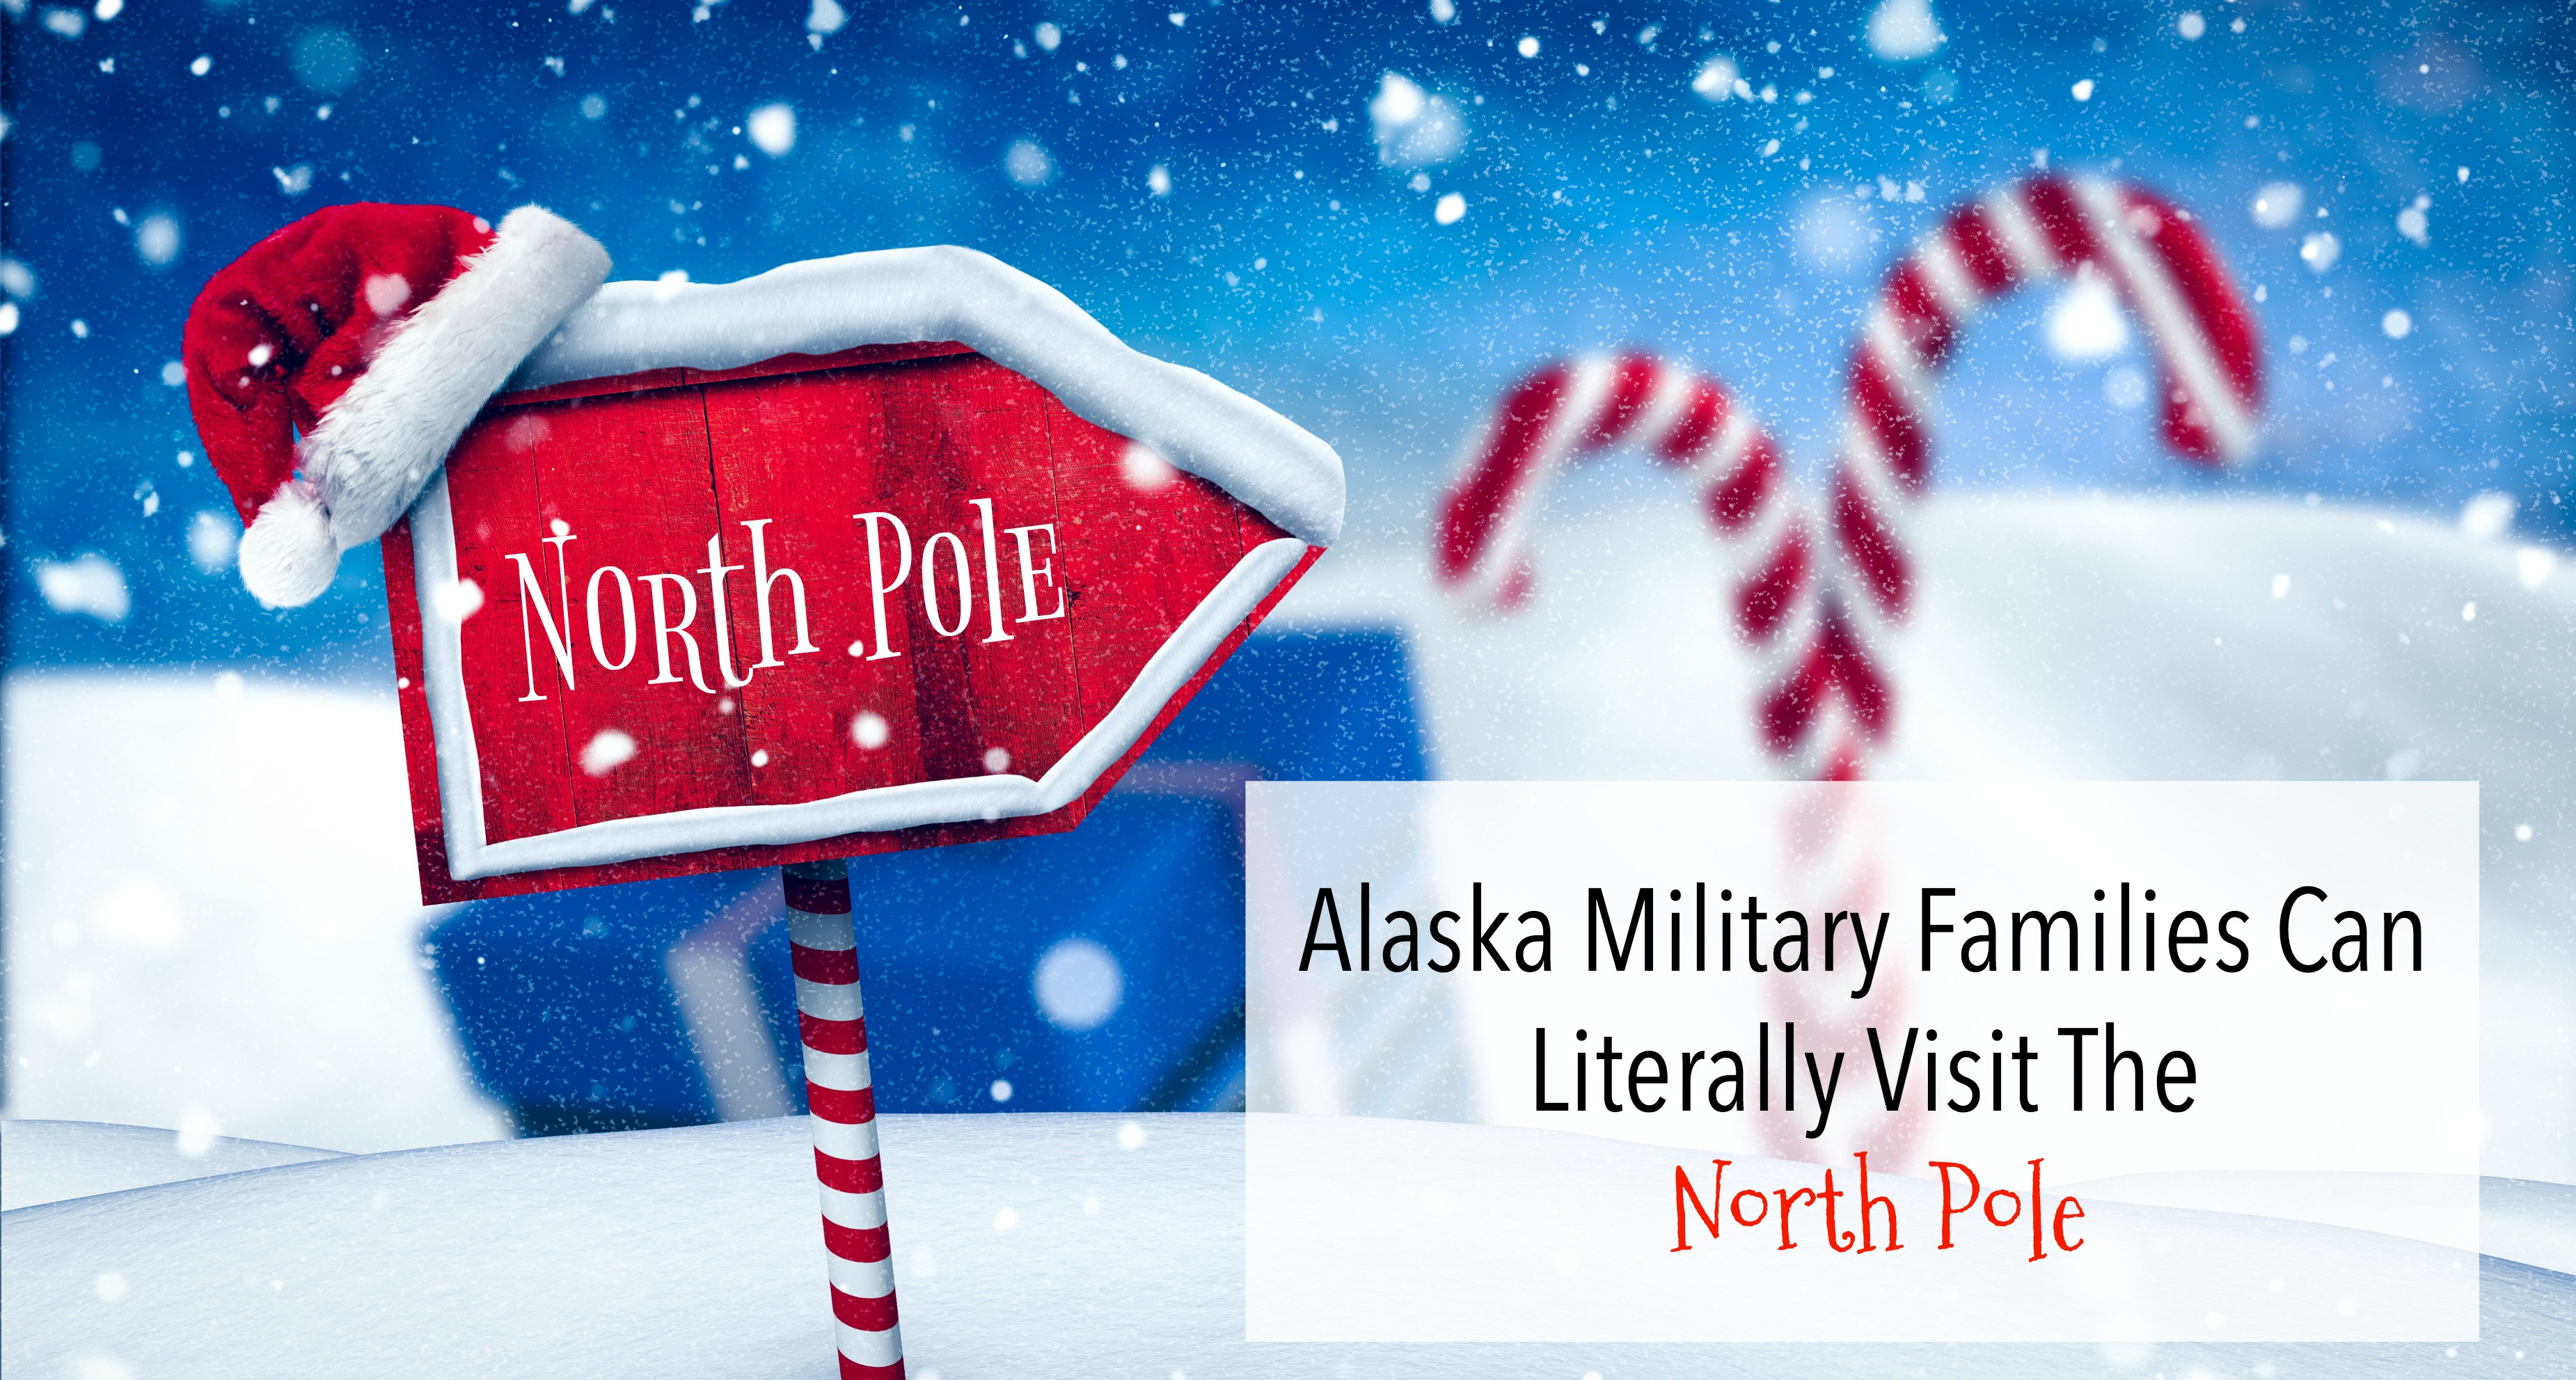 Alaska Military Families Can Literally Visit The North Pole